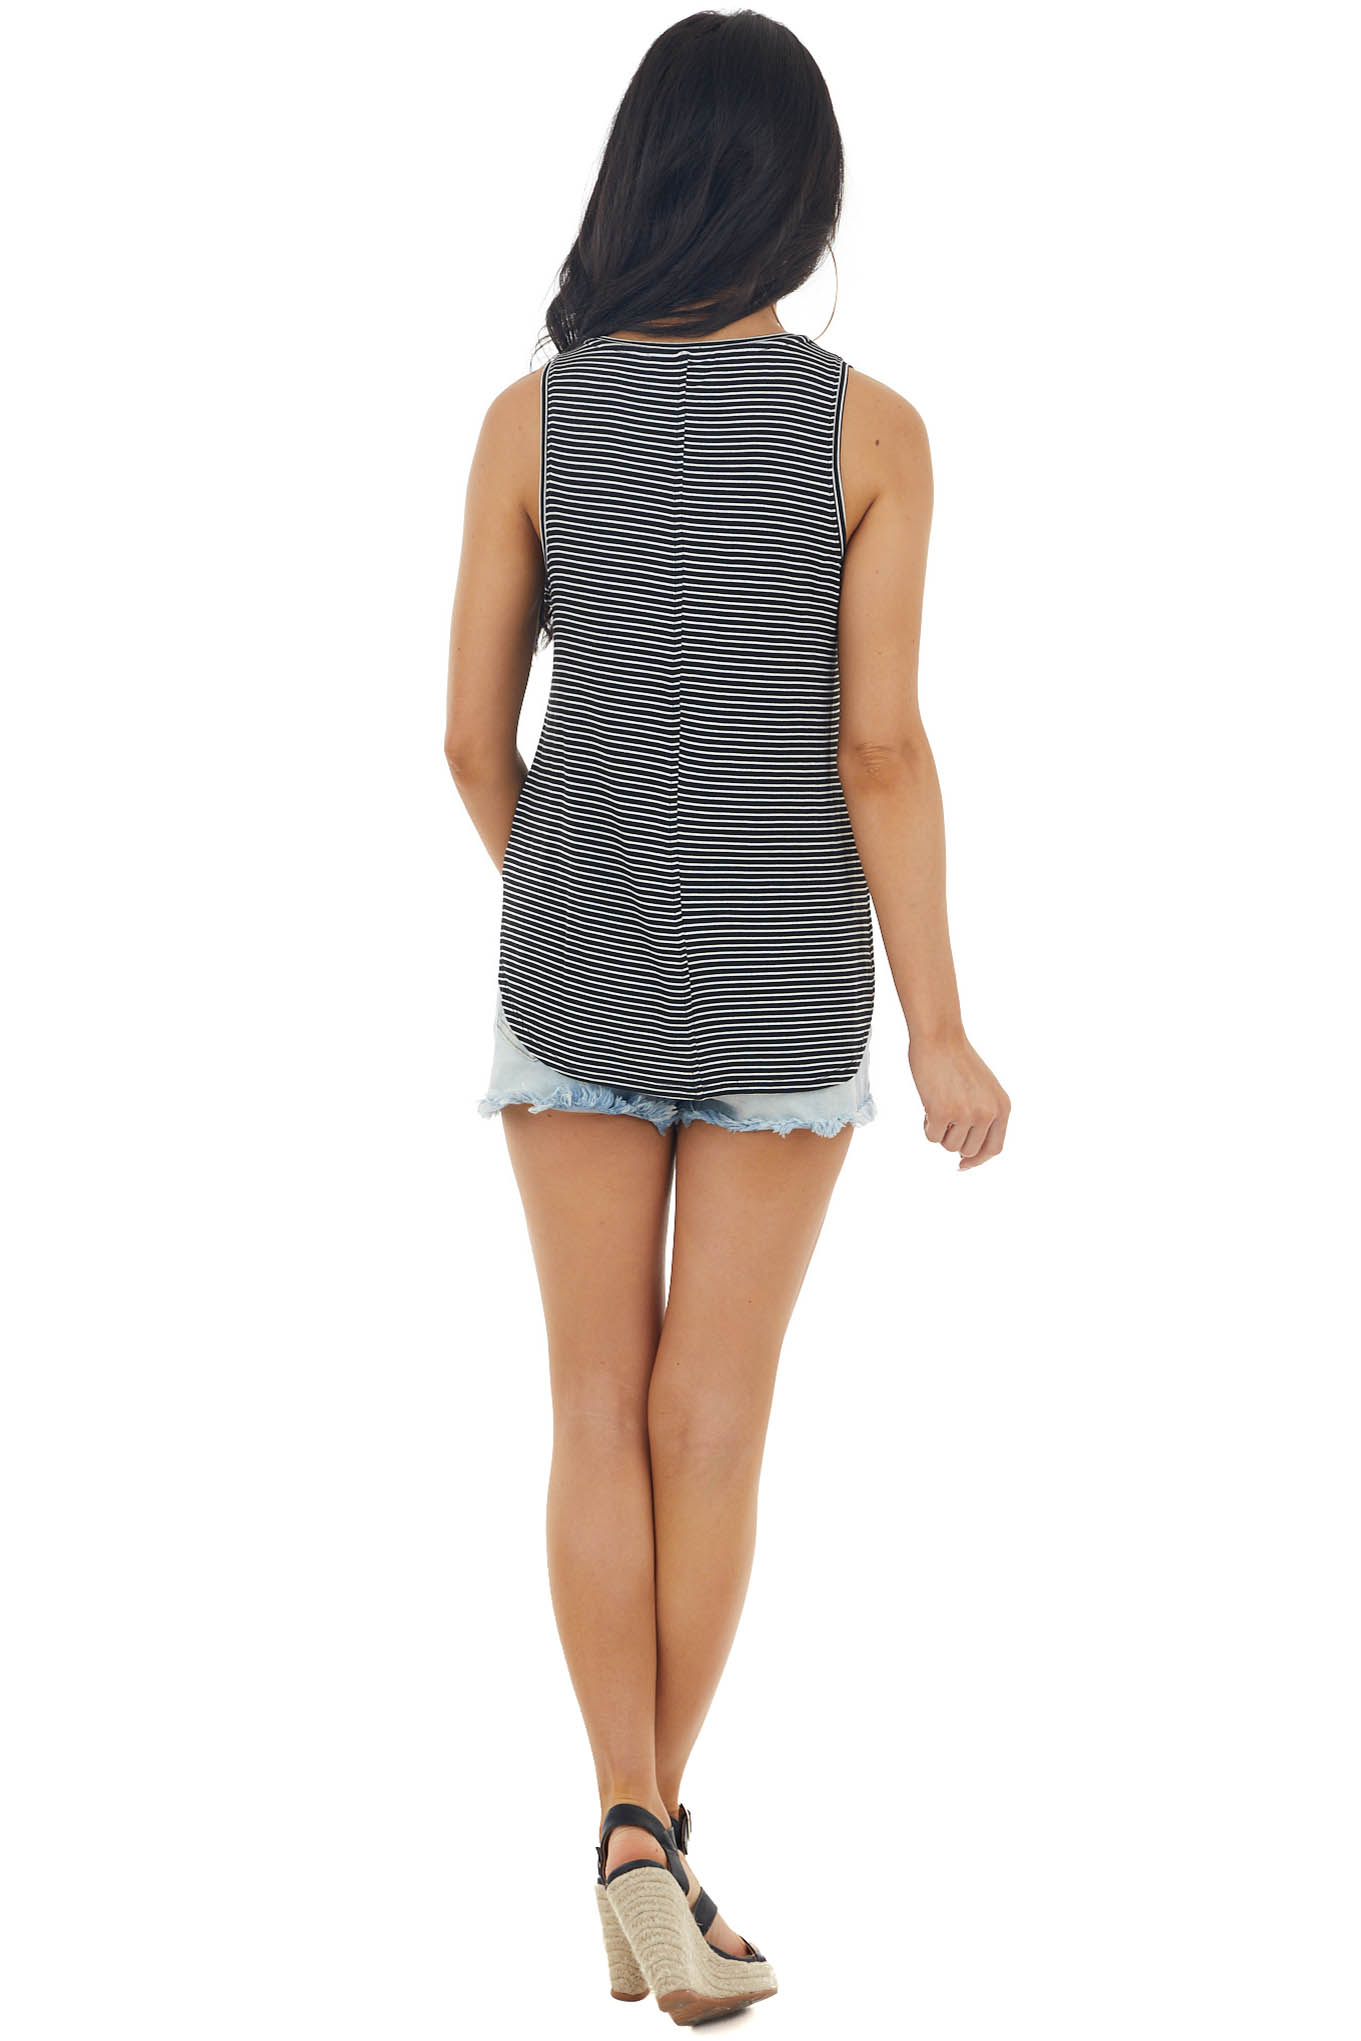 Black Striped Sleeveless Loose Fit Knit Top with V Neckline